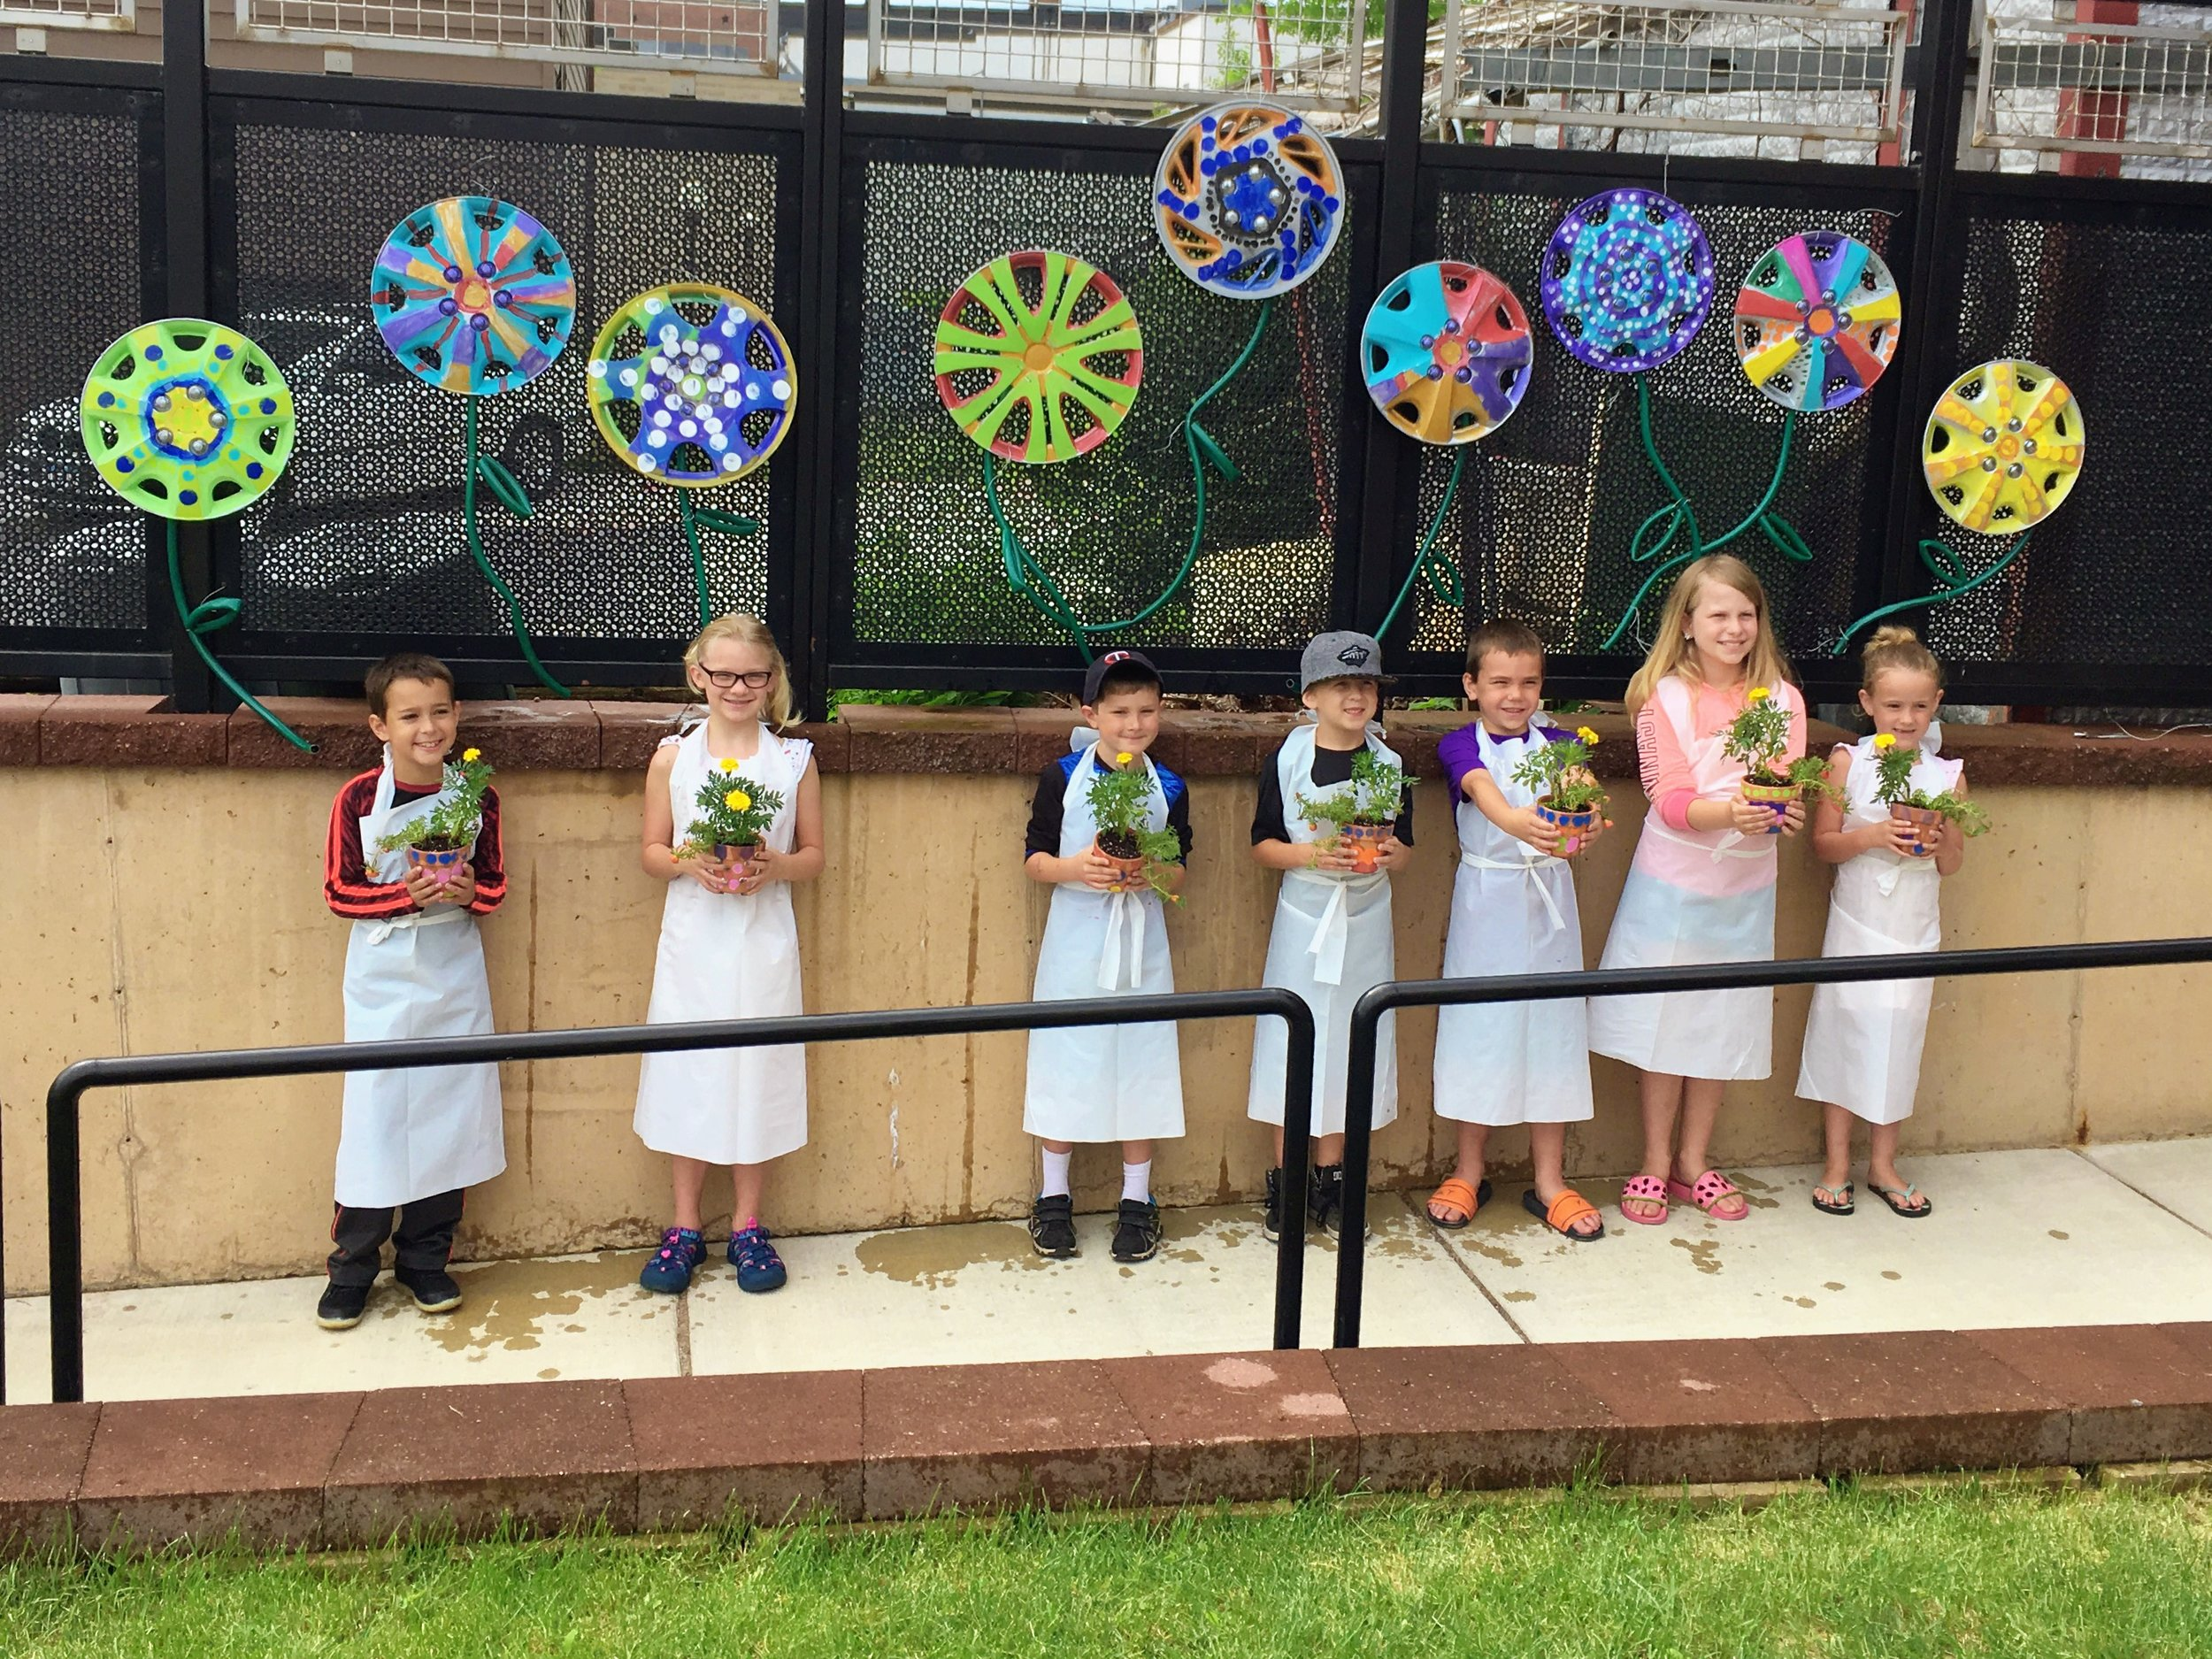 Creativity Camp participants with their hubcap flowers along the fence in The Grand's backyard.